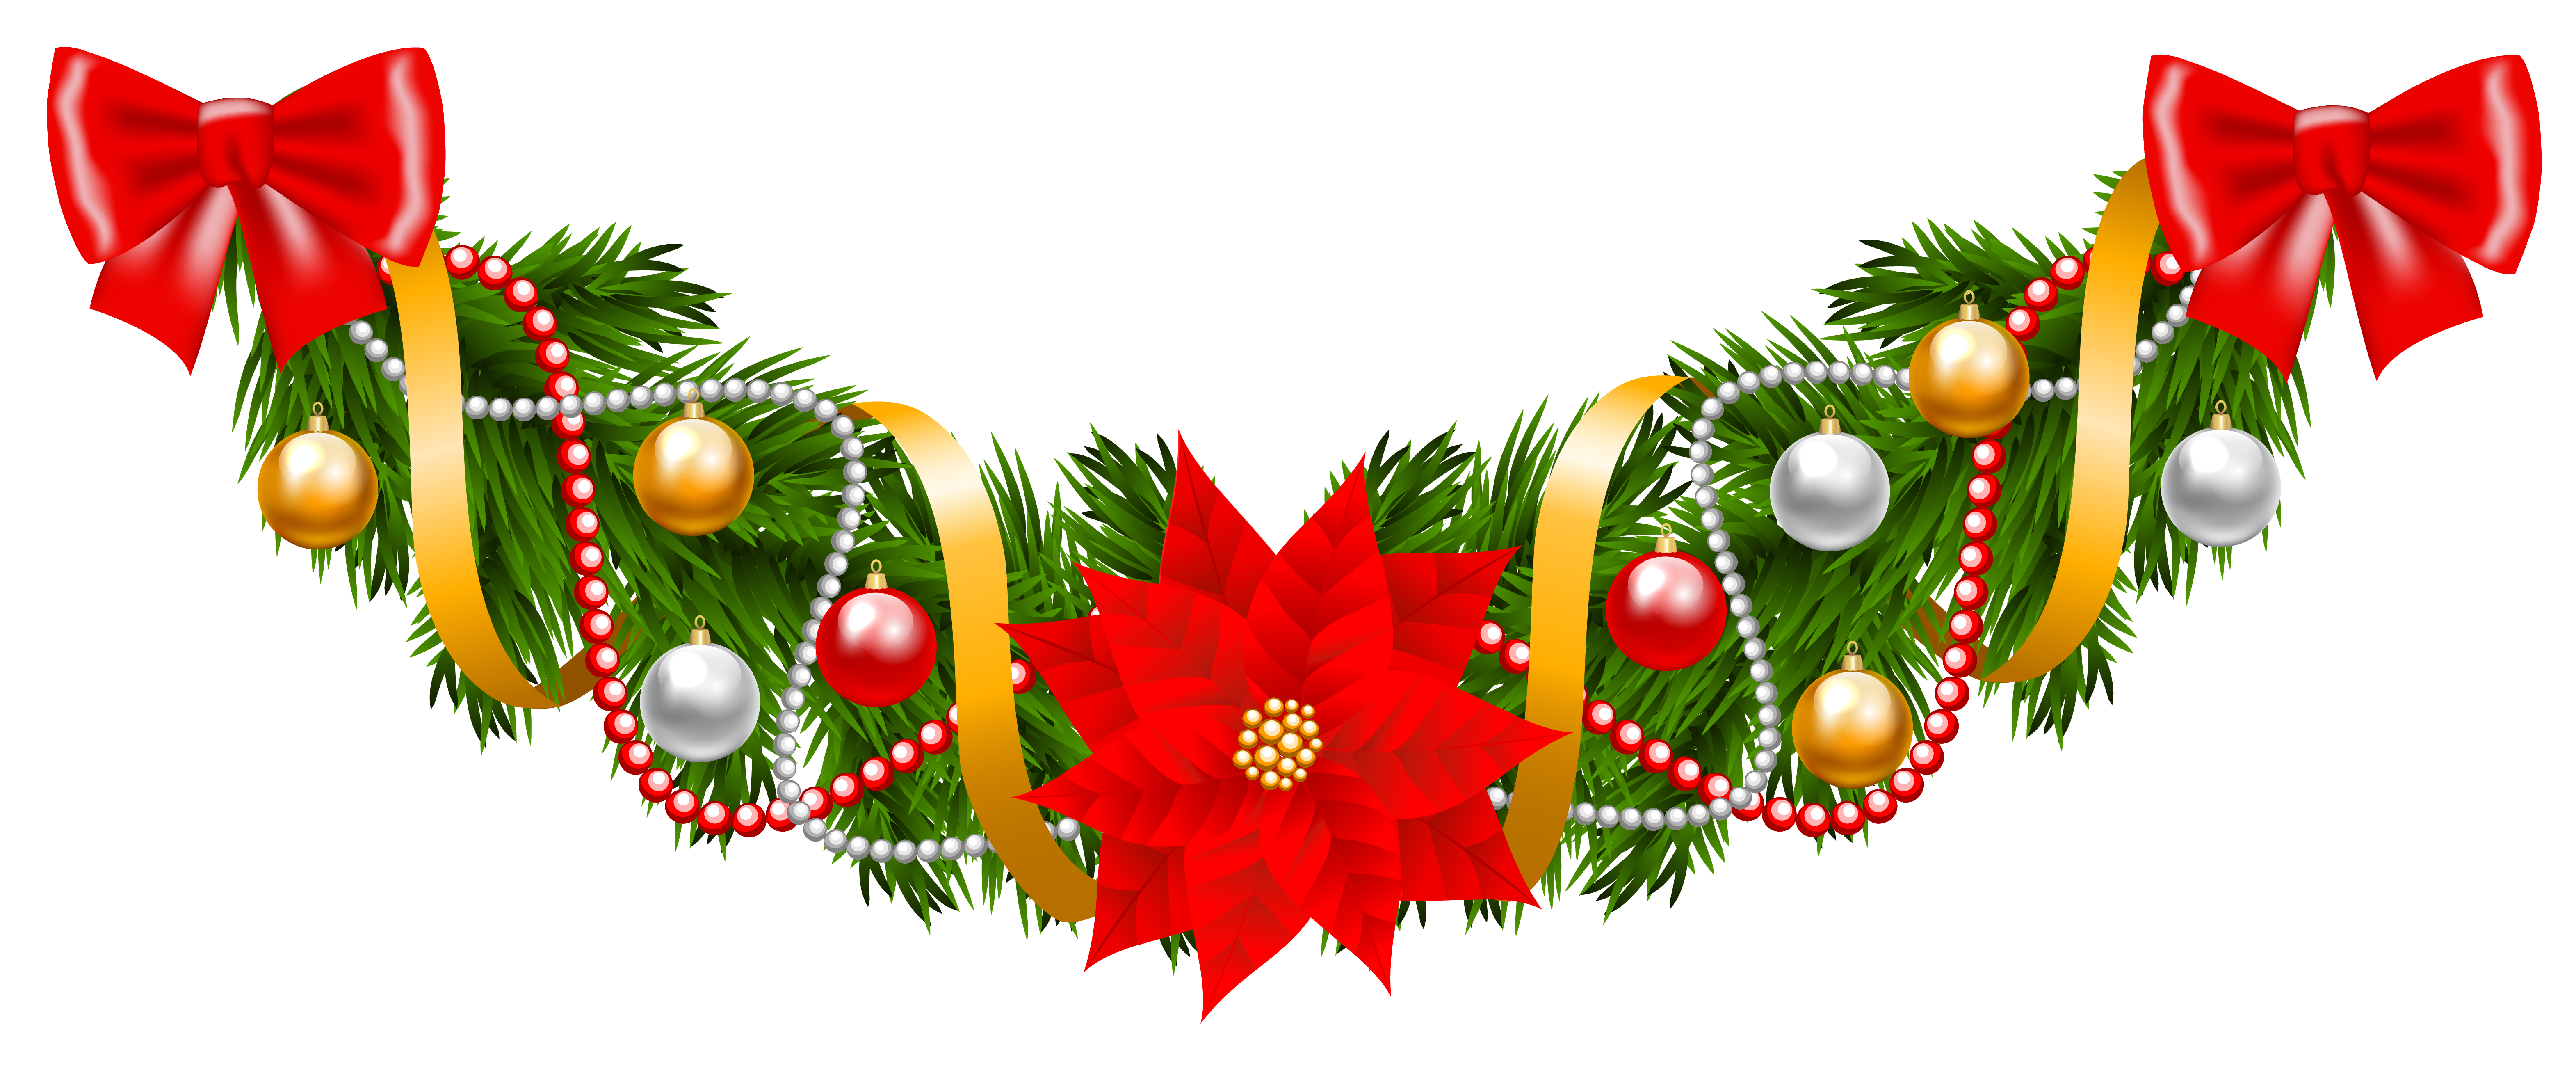 Poinsettia tree clipart clip library stock Christmas Pine Deco Garland with Poinsettia PNG Clipart Image ... clip library stock